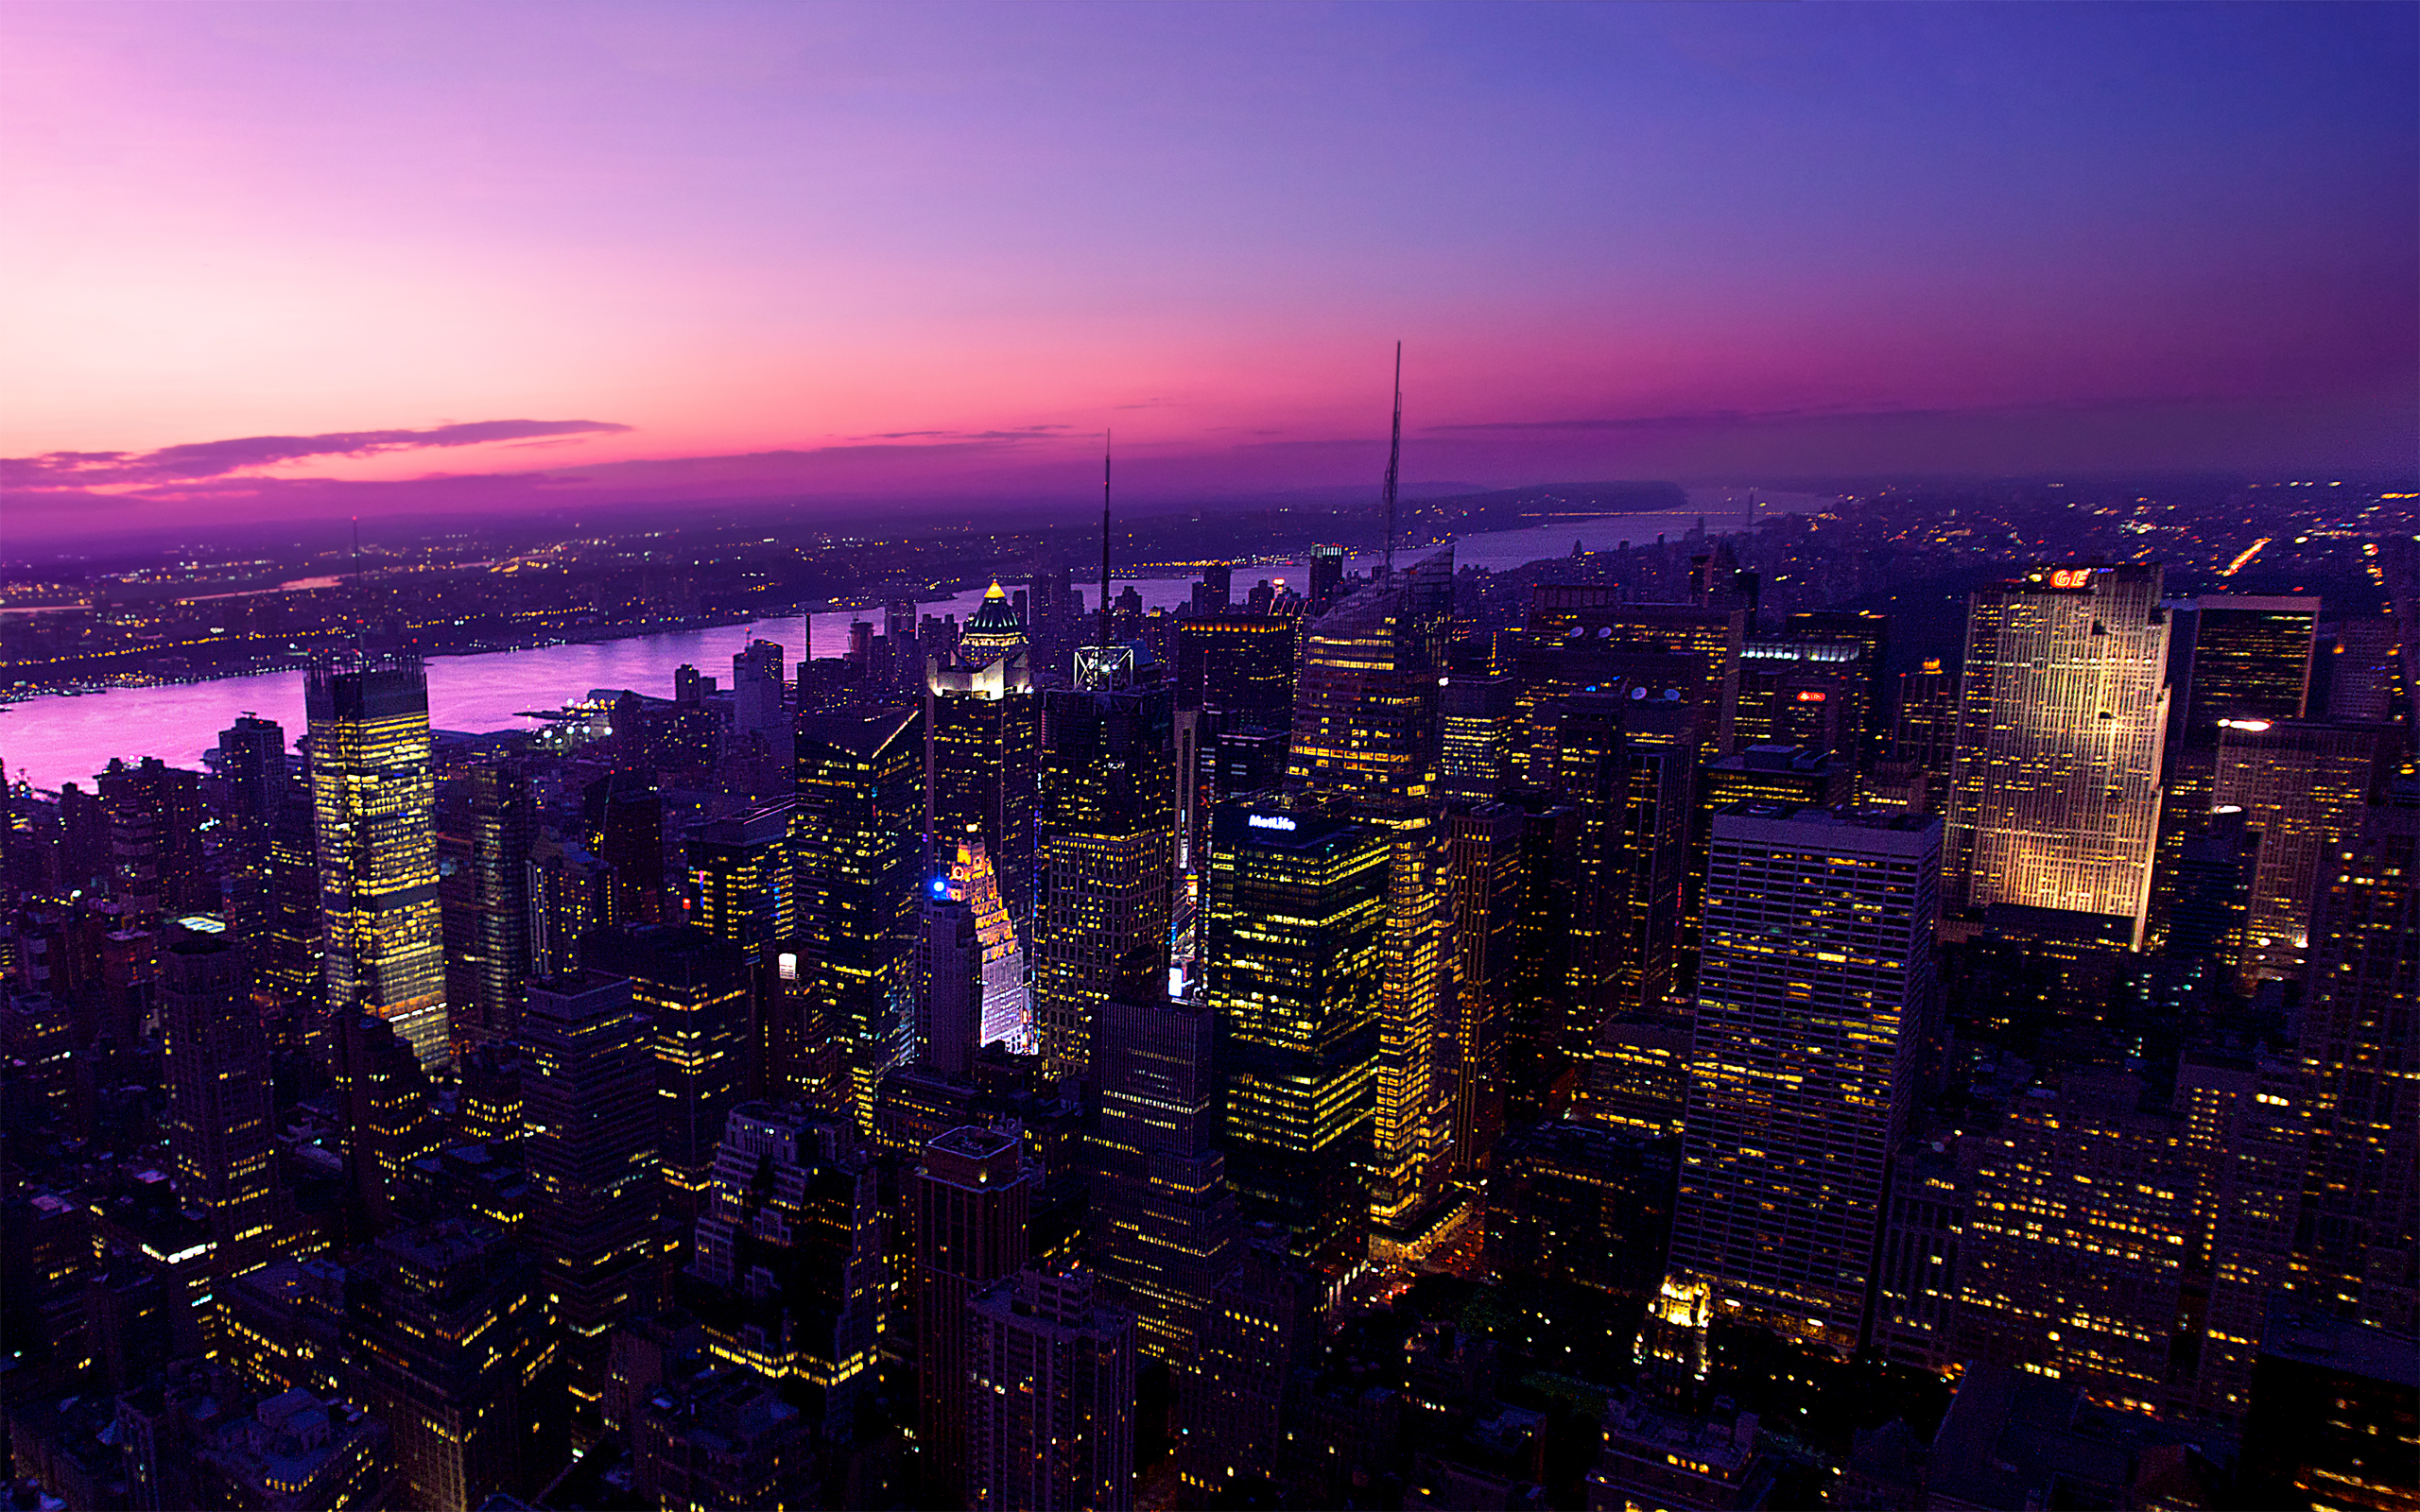 Twilight in New York City